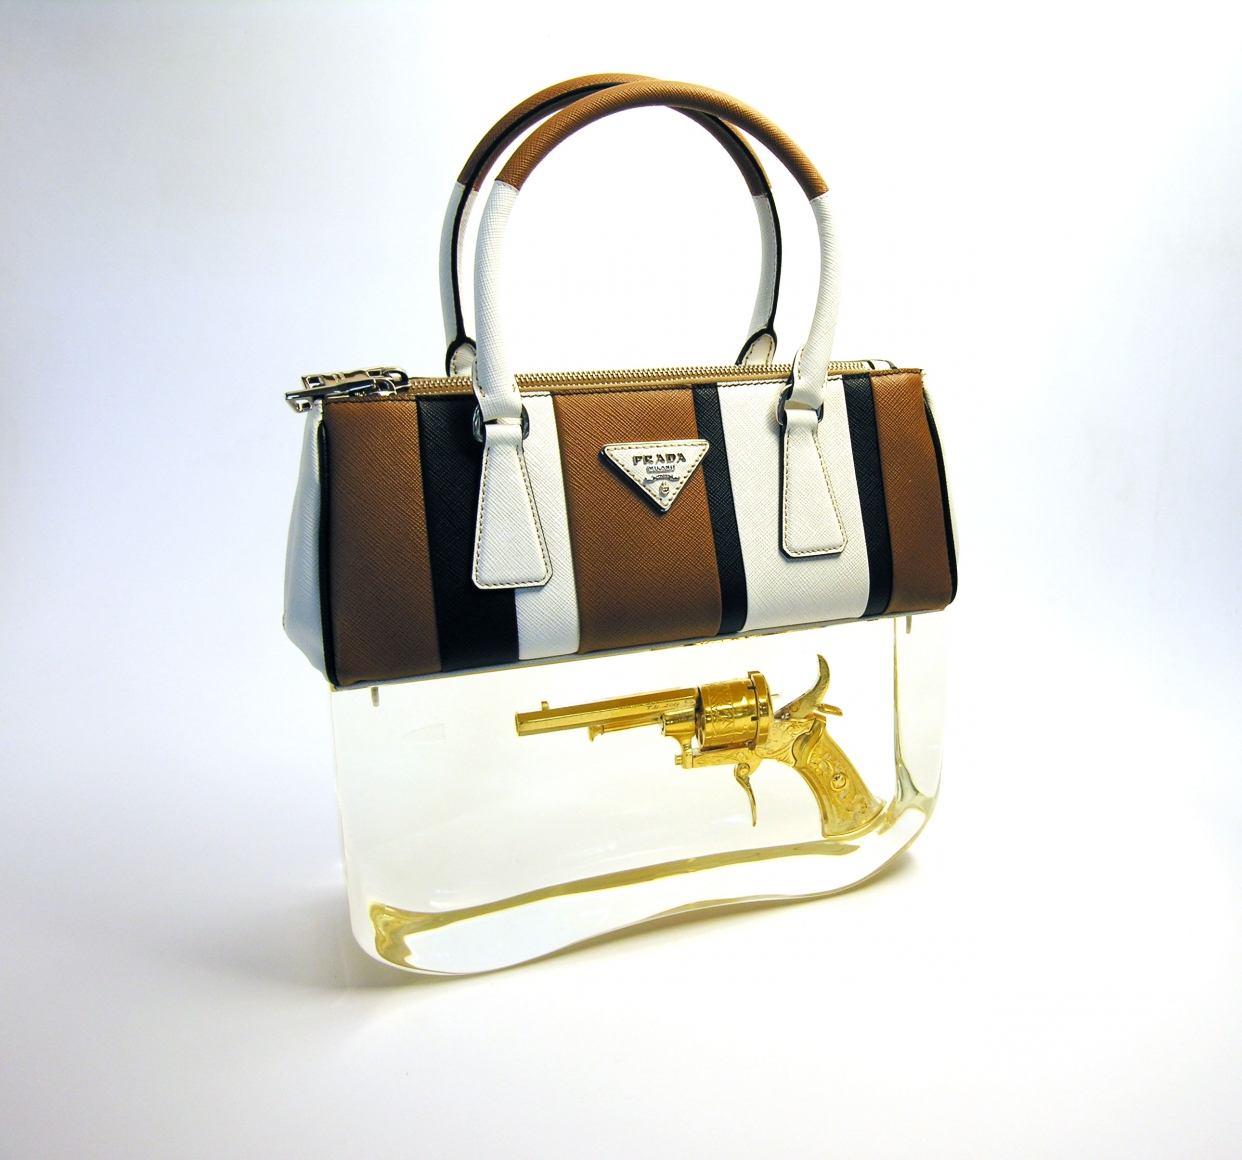 Astonishing Ted Noten Artists Ornamentum Gallery Contemporary Jewelry Cjindustries Chair Design For Home Cjindustriesco